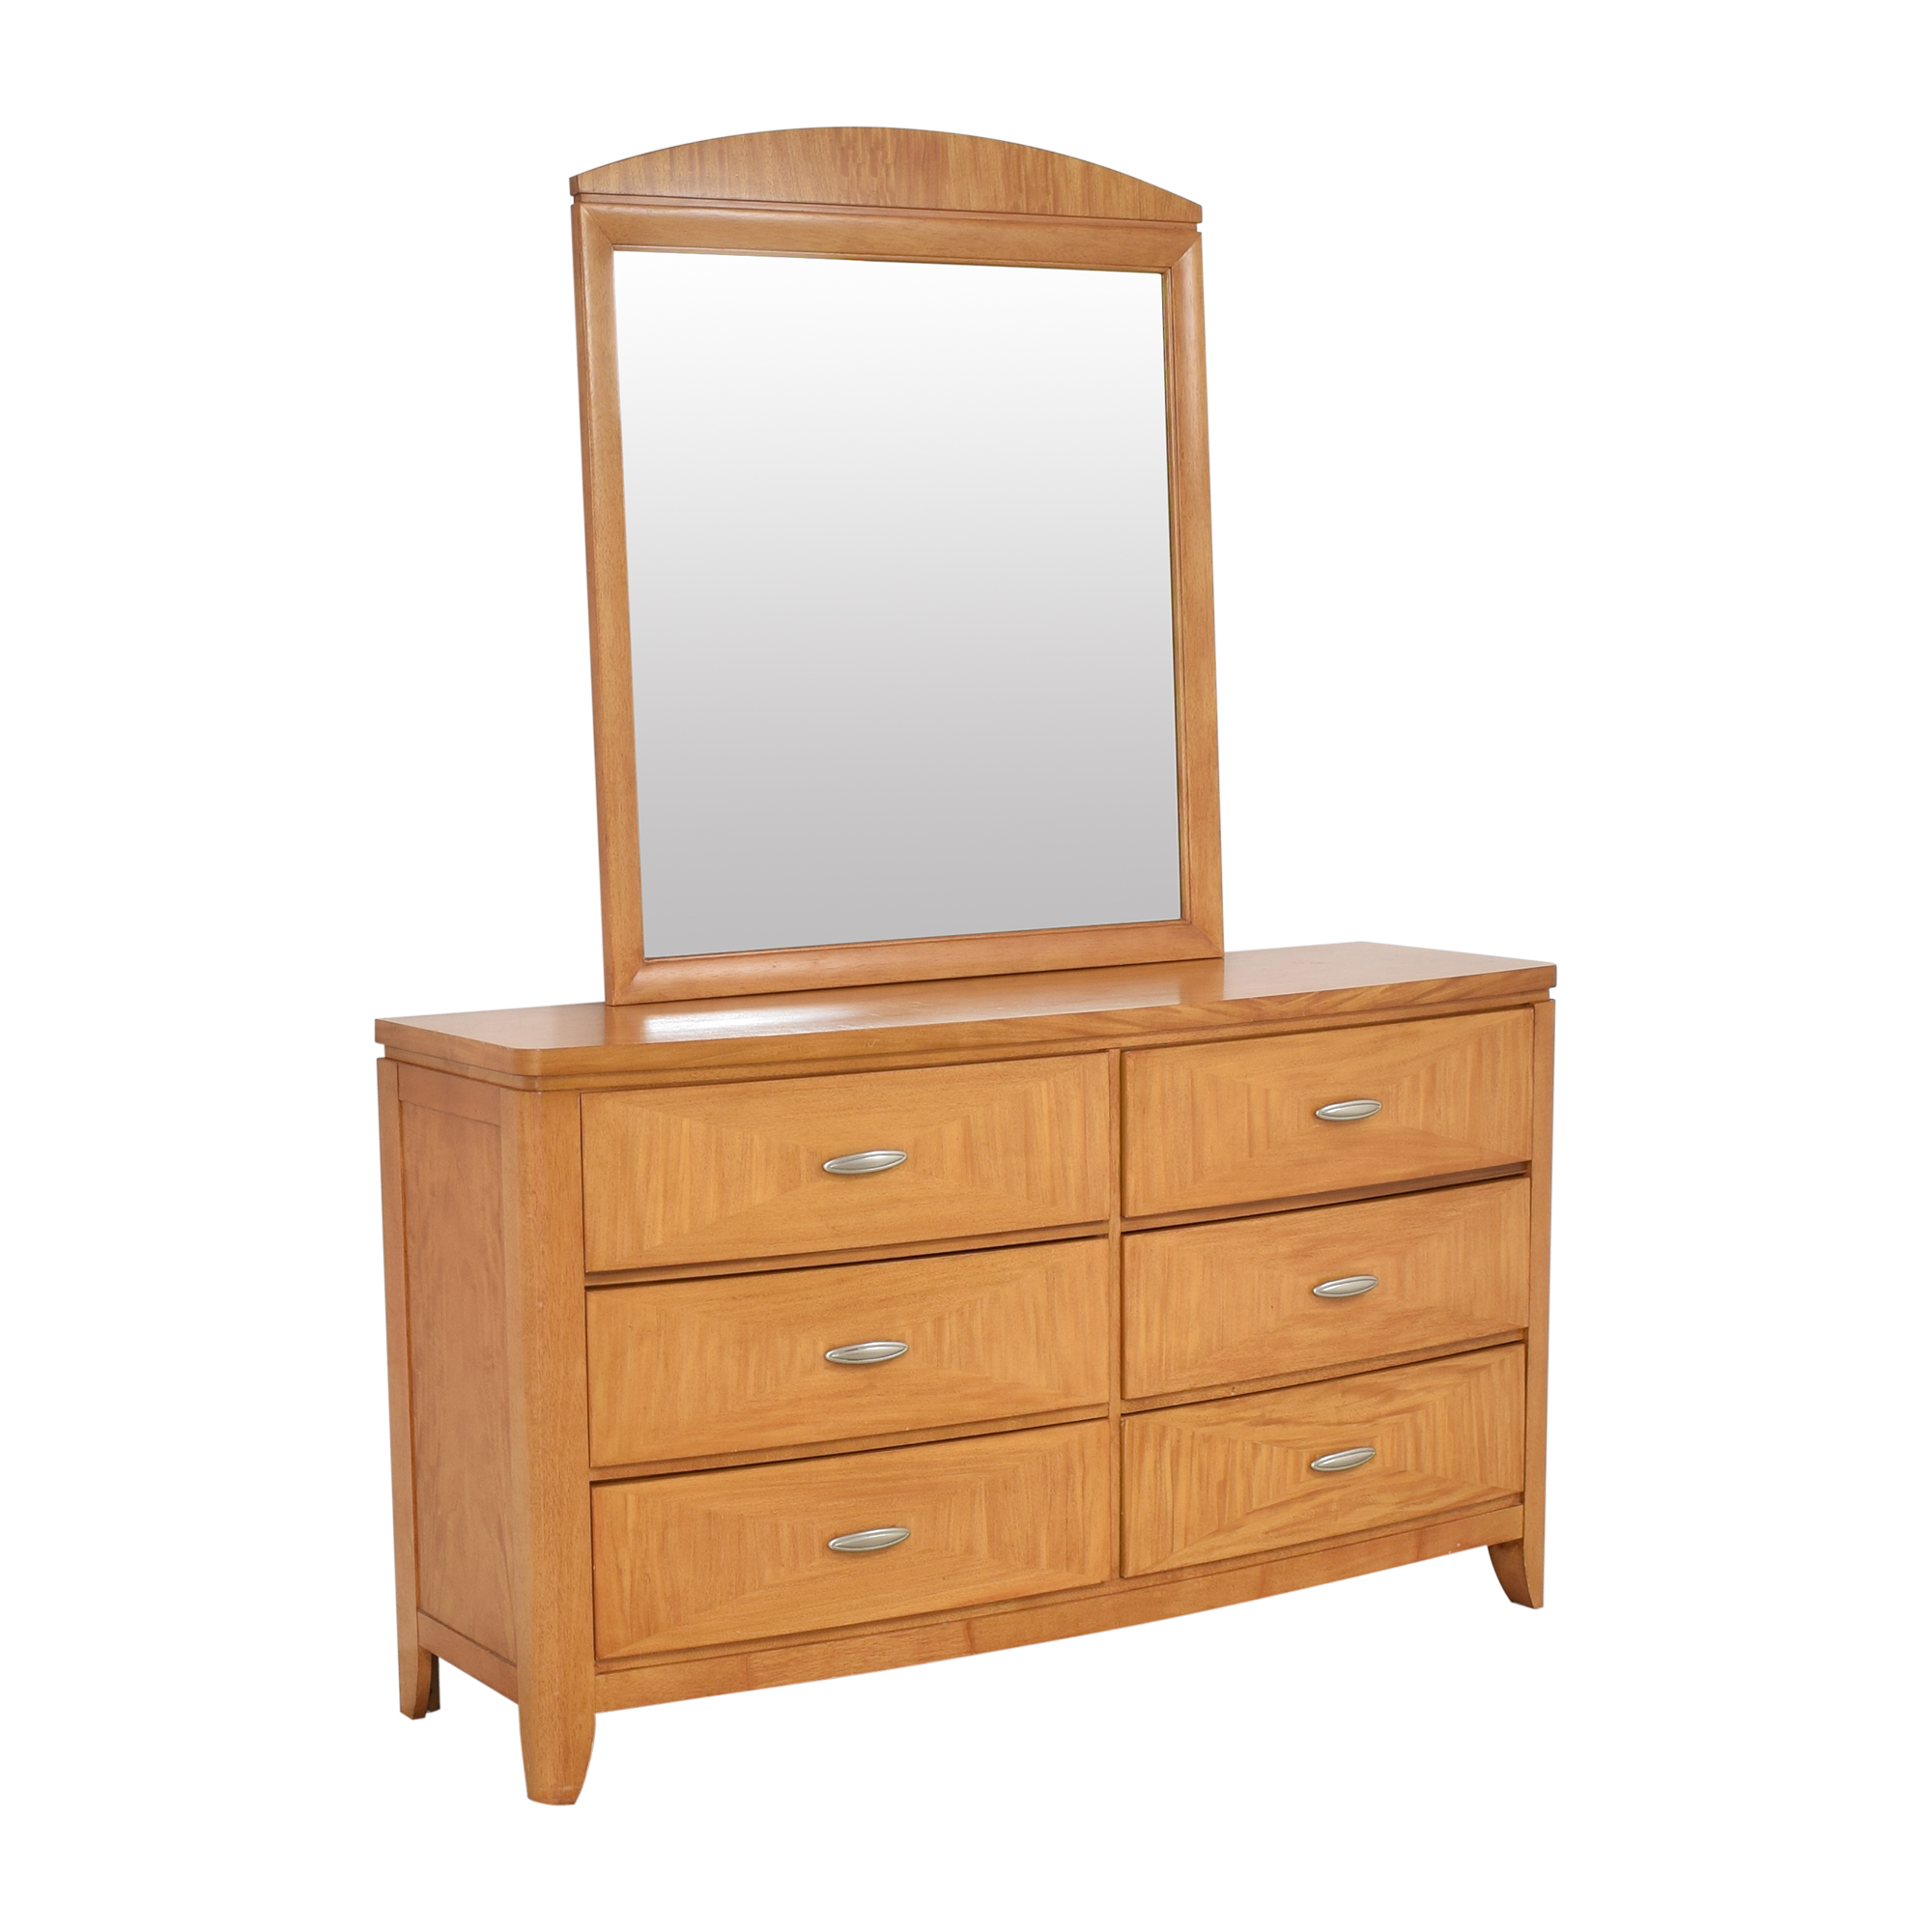 Universal Furniture Universal Furniture Double Dresser with Mirror coupon